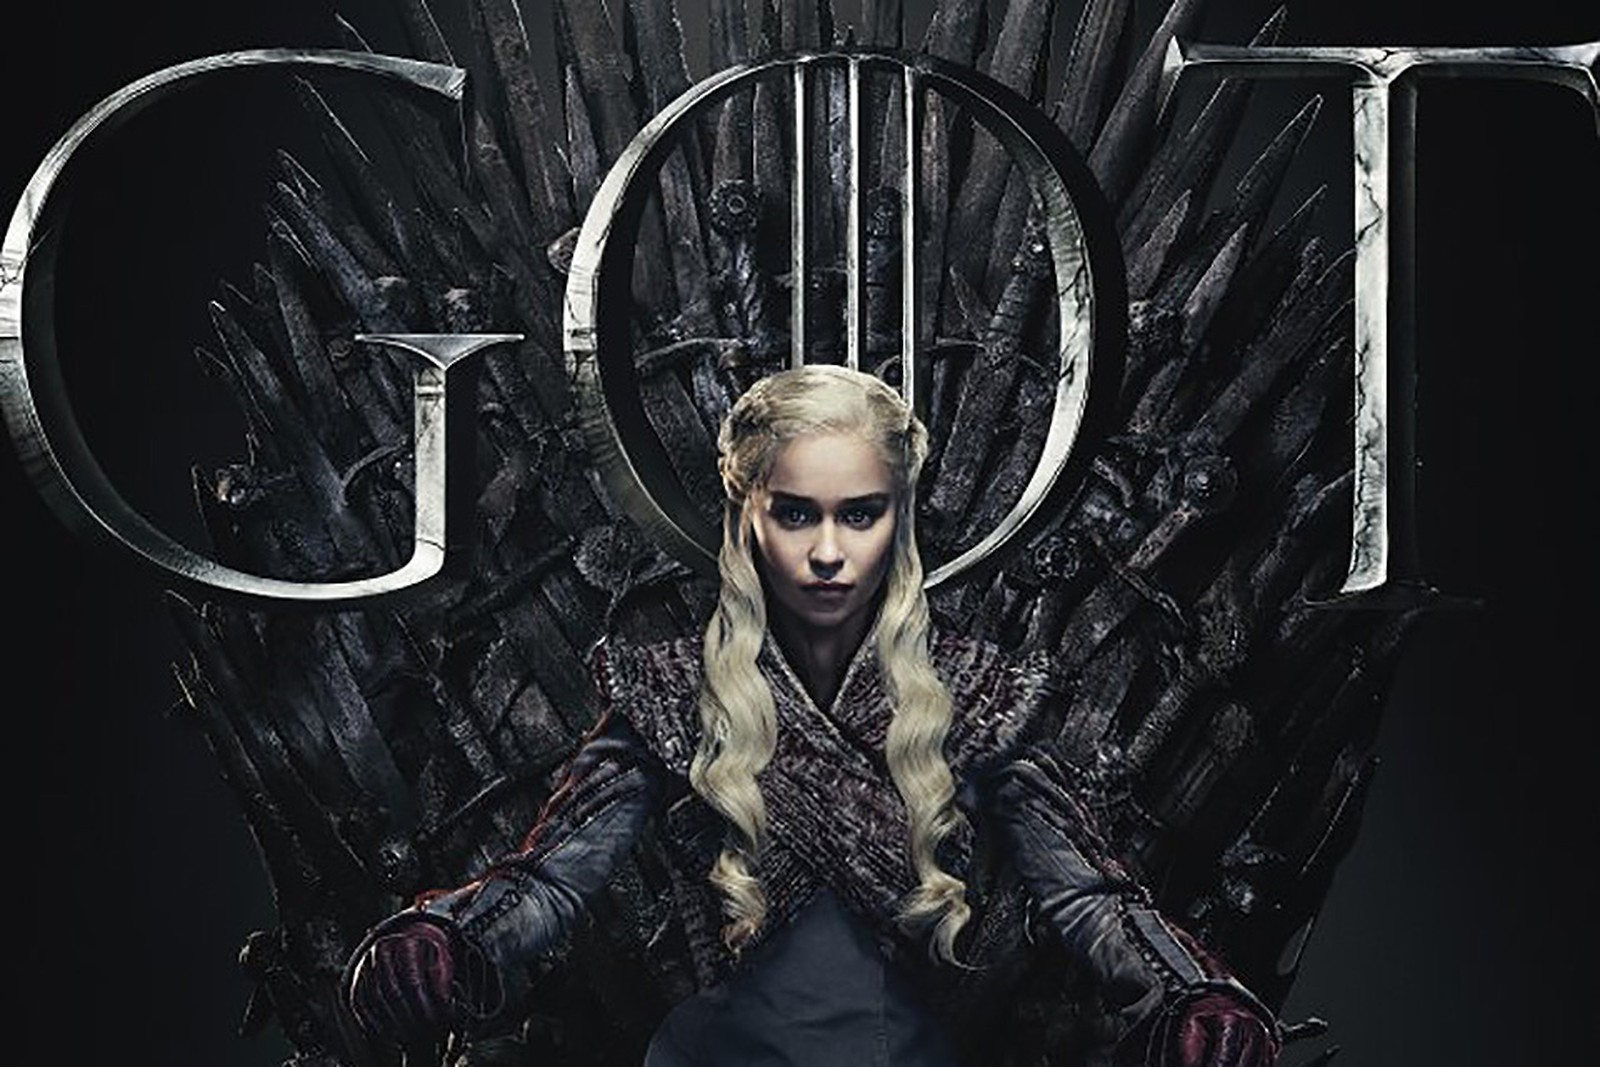 Game of Thrones Spin-Off Cancelled